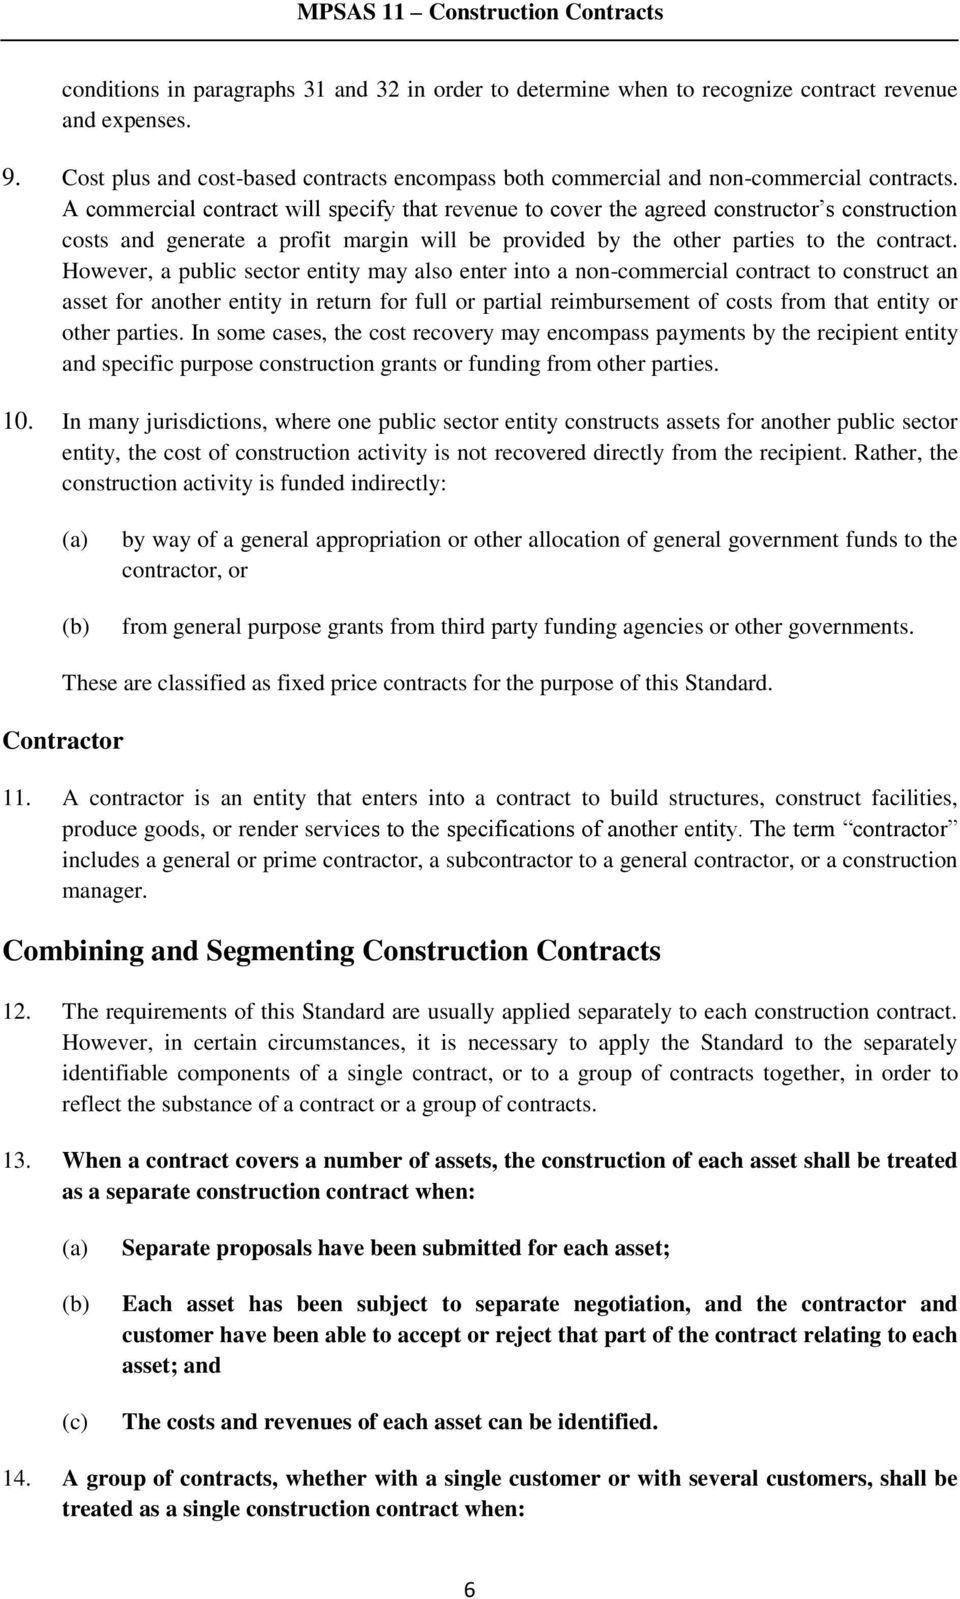 However, a public sector entity may also enter into a non-commercial contract to construct an asset for another entity in return for full or partial reimbursement of costs from that entity or other